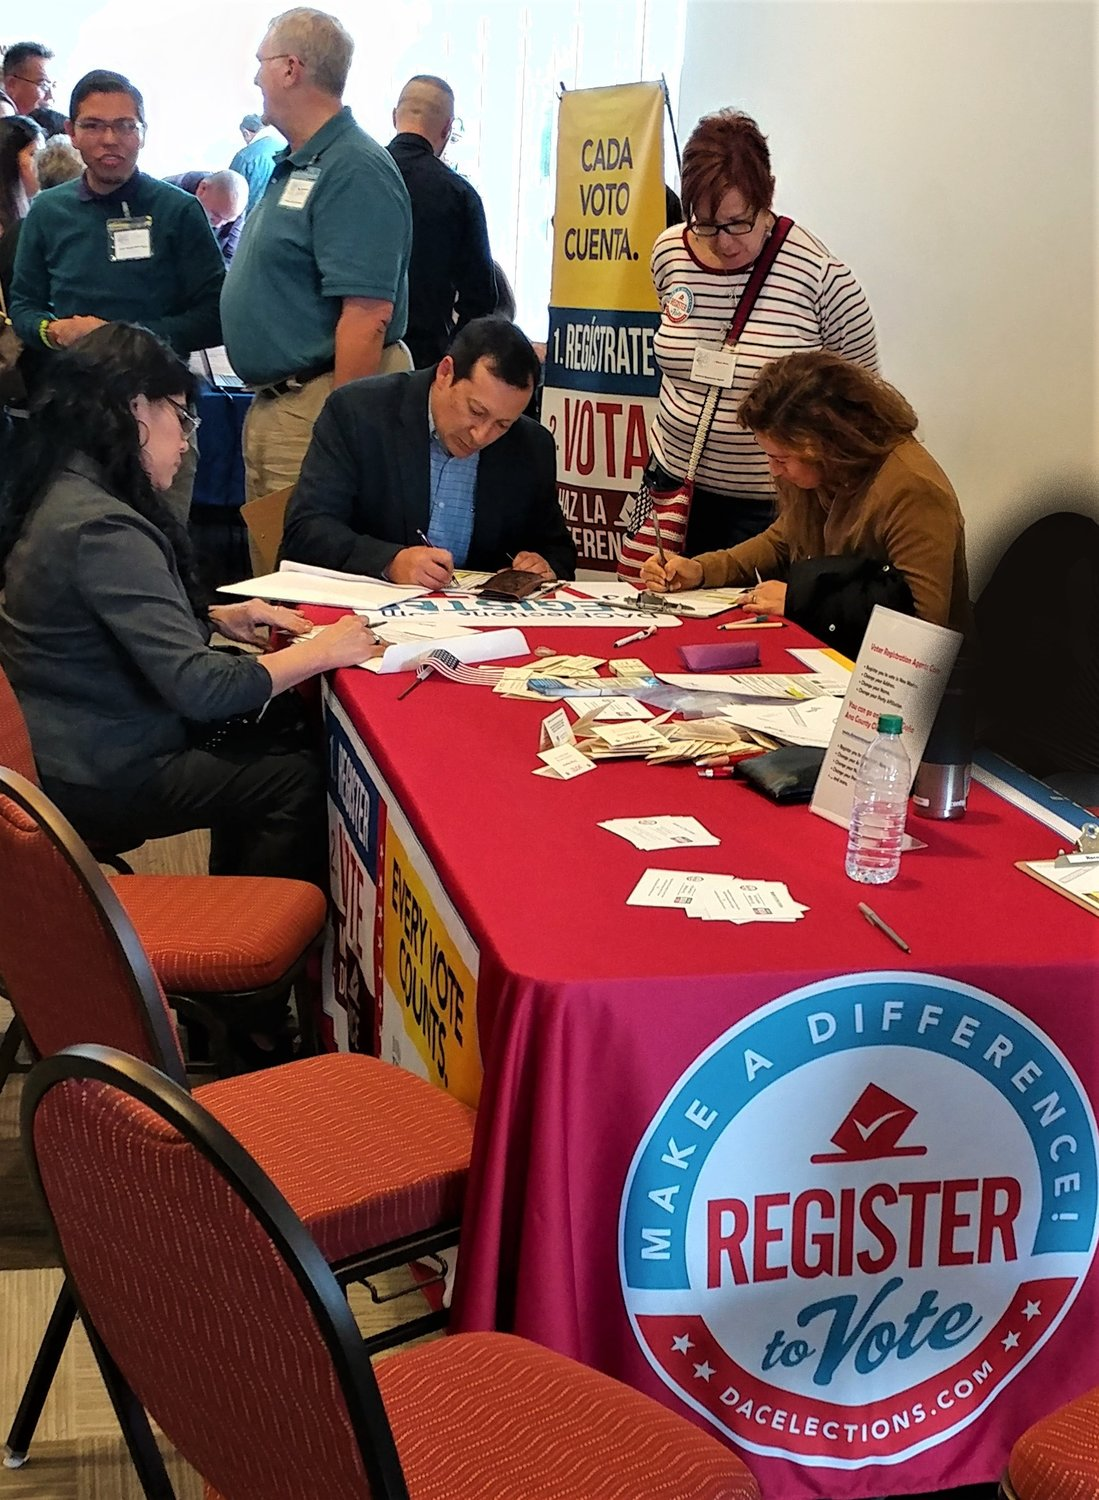 New American citizens could register to vote in the hallway outside the ballroom at Las Cruces Convention Center where they were sworn in.